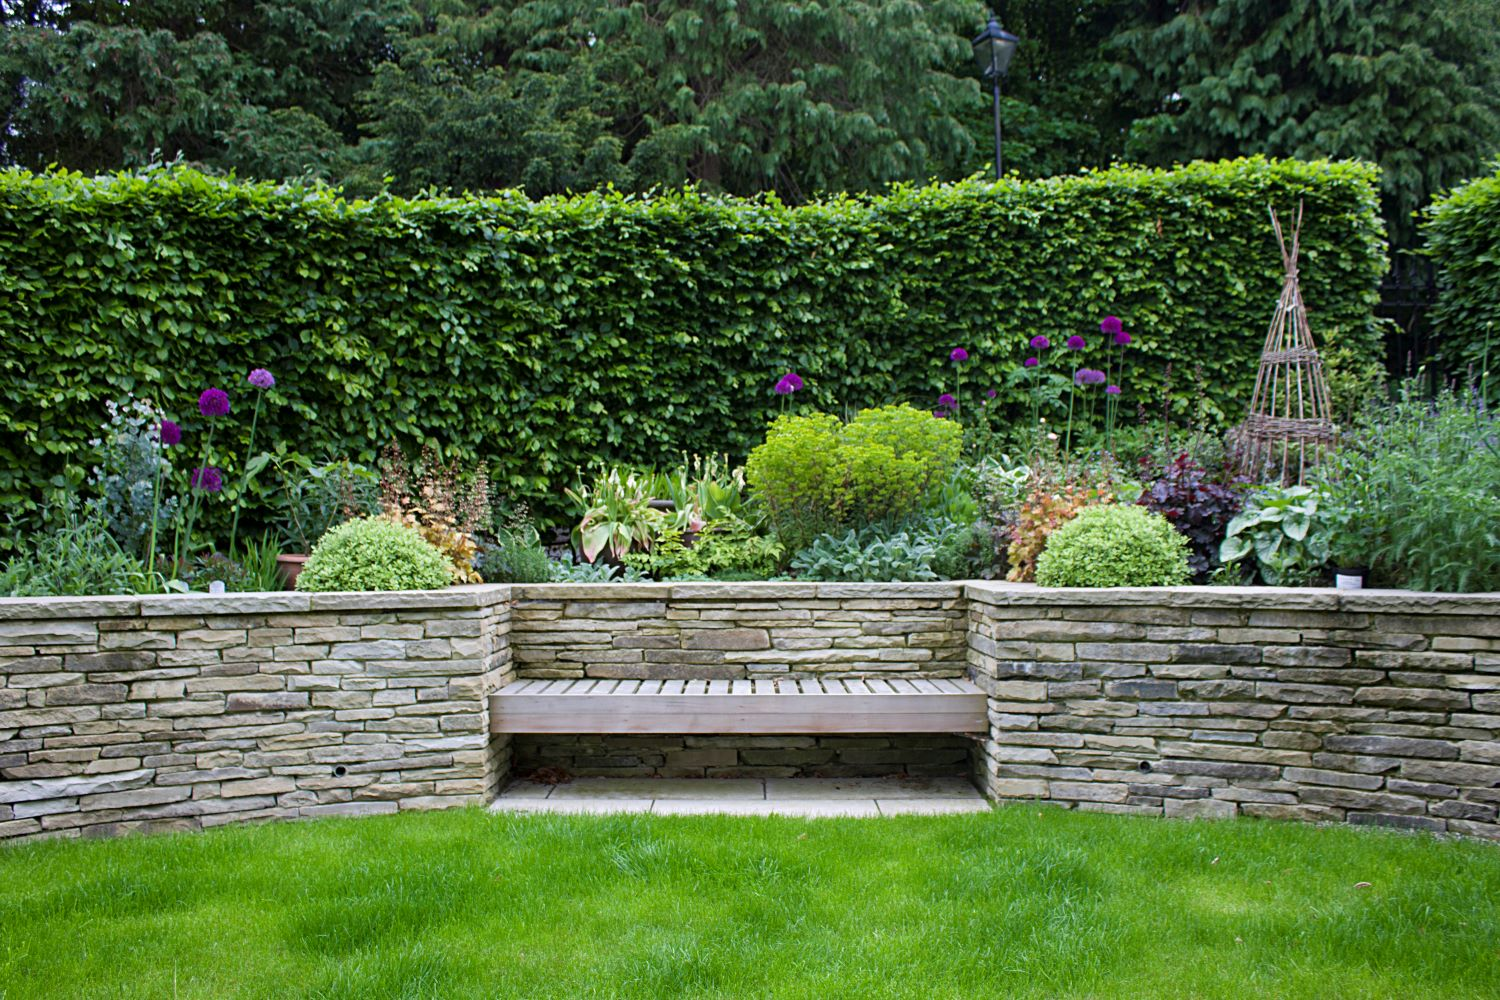 The built-in timber bench in the dry stone wall